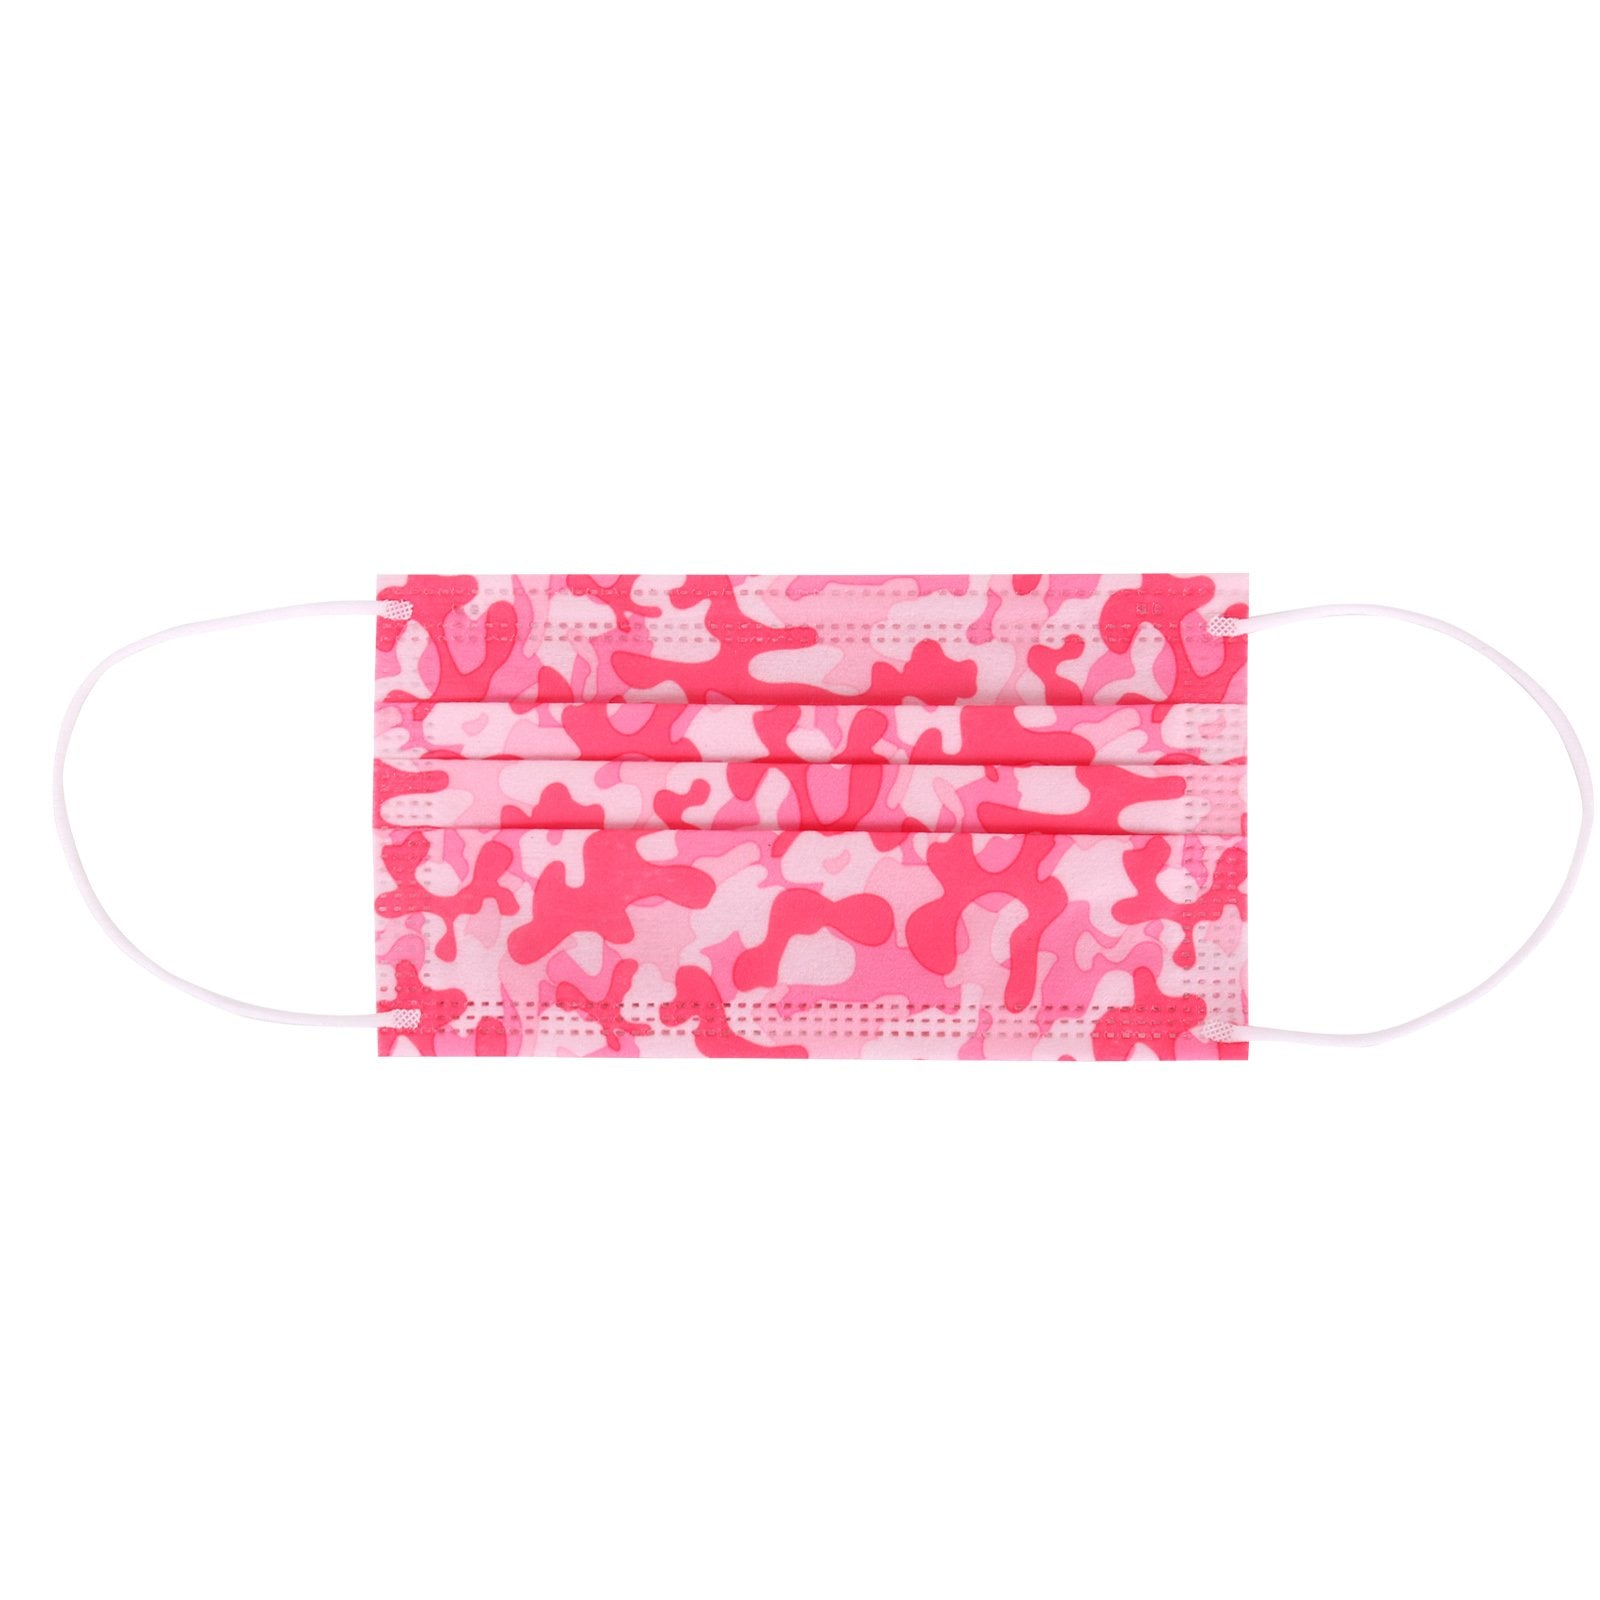 20 Pcs American Bling 10Pcs/Pack Pink Camo Print 3Ply Disposable Face Masks